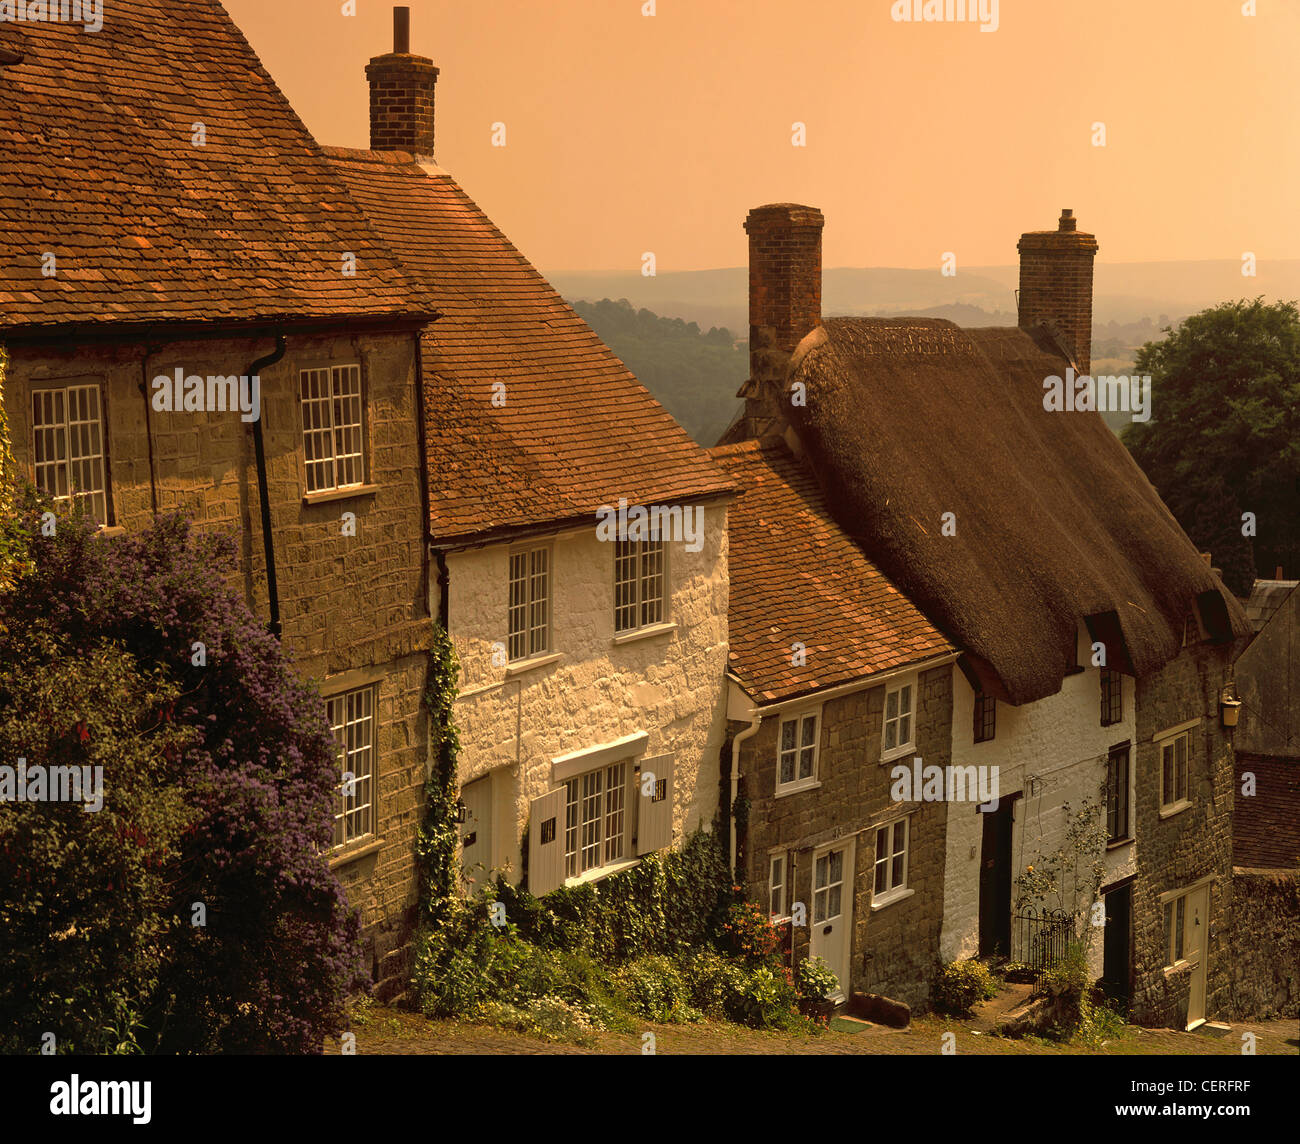 The early evening sky over Gold Hill. - Stock Image